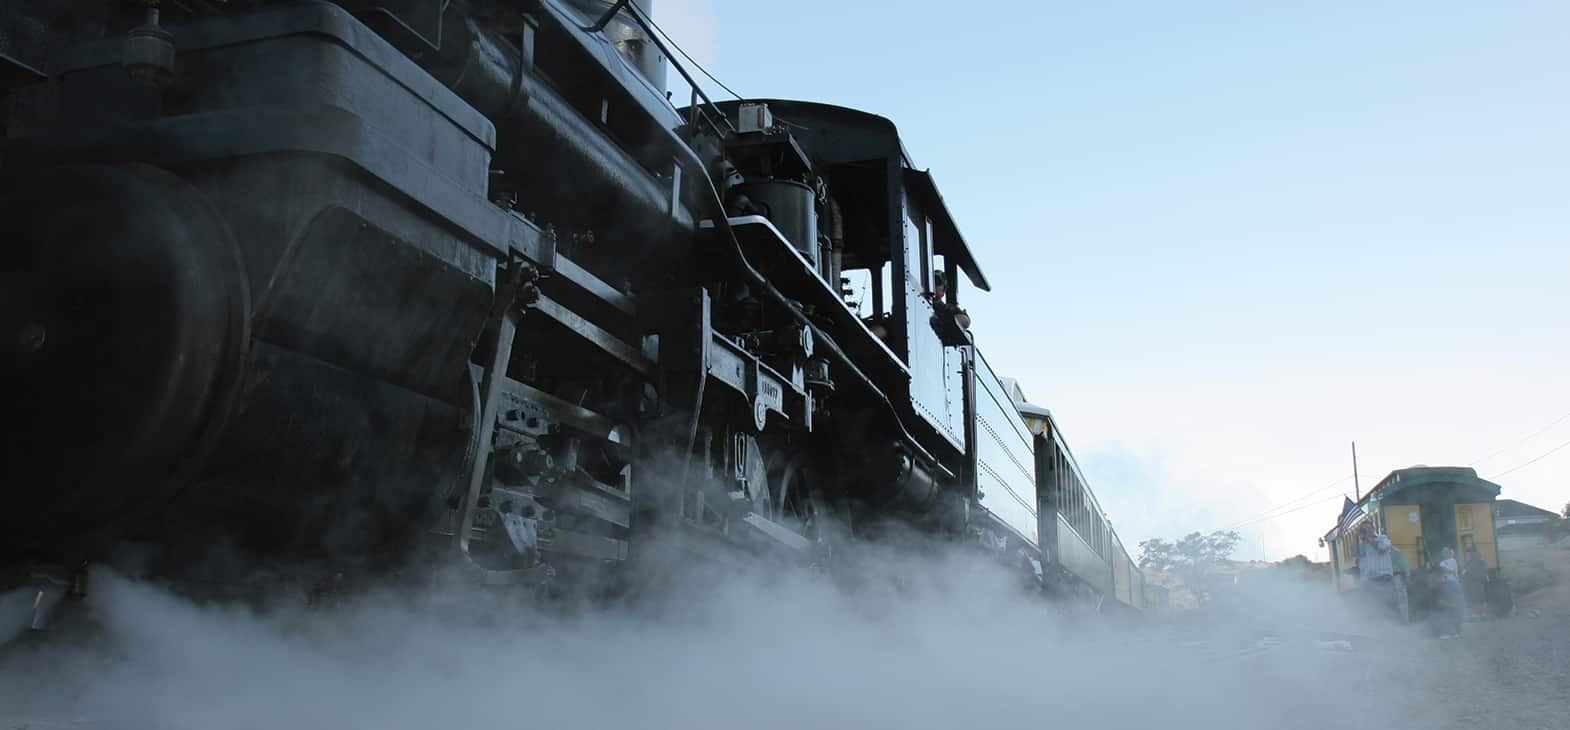 V&T Railway Virginia city to Gold hill Steam Engine